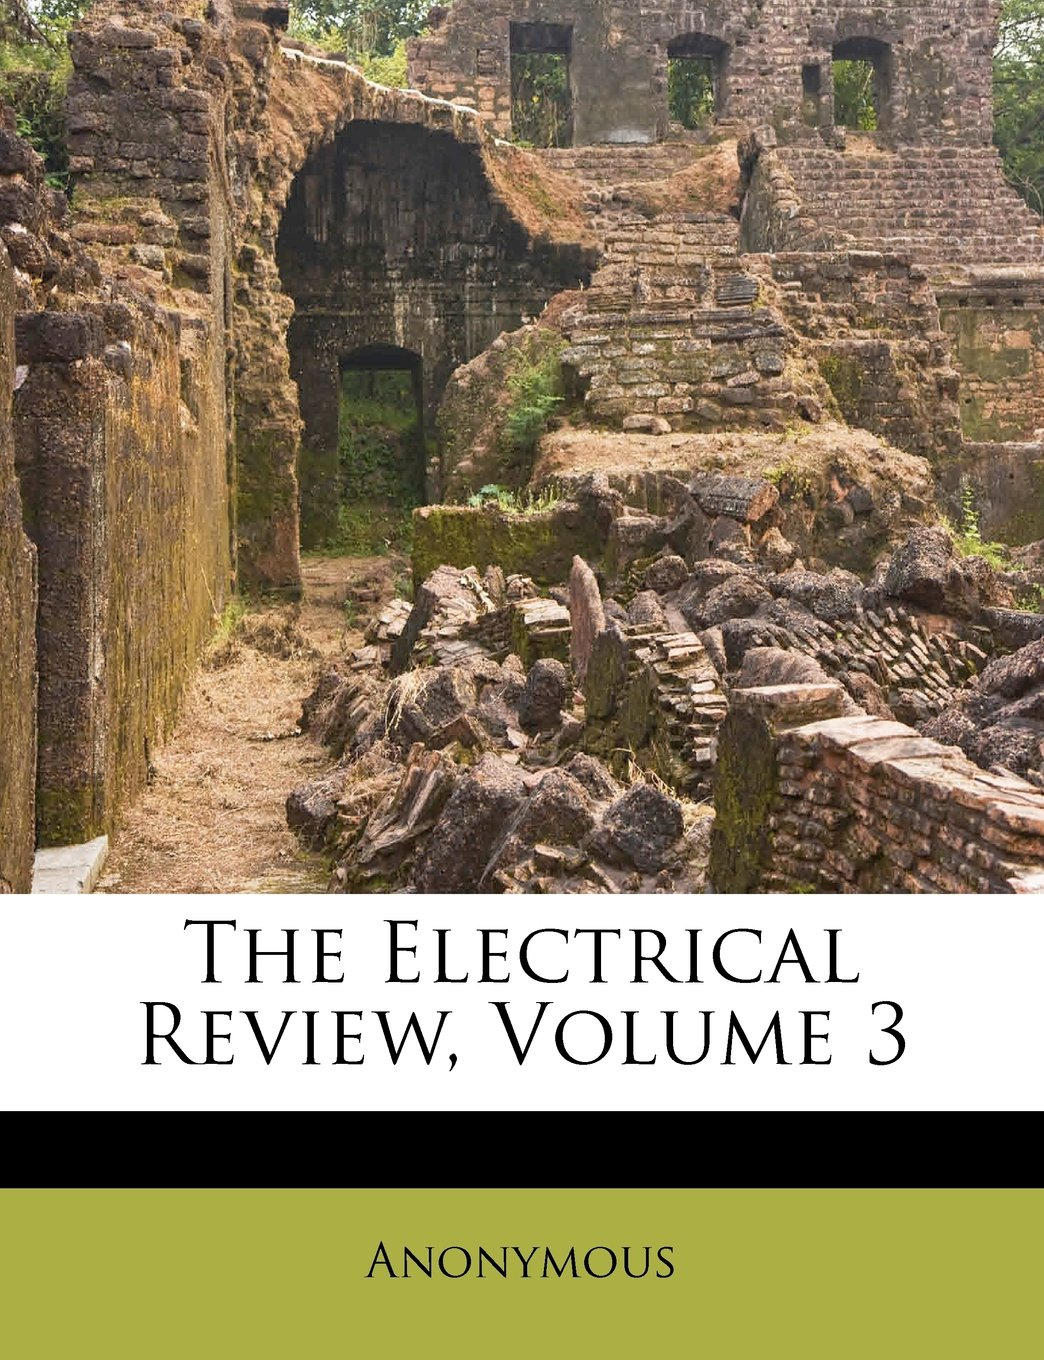 Download The Electrical Review, Volume 3 PDF